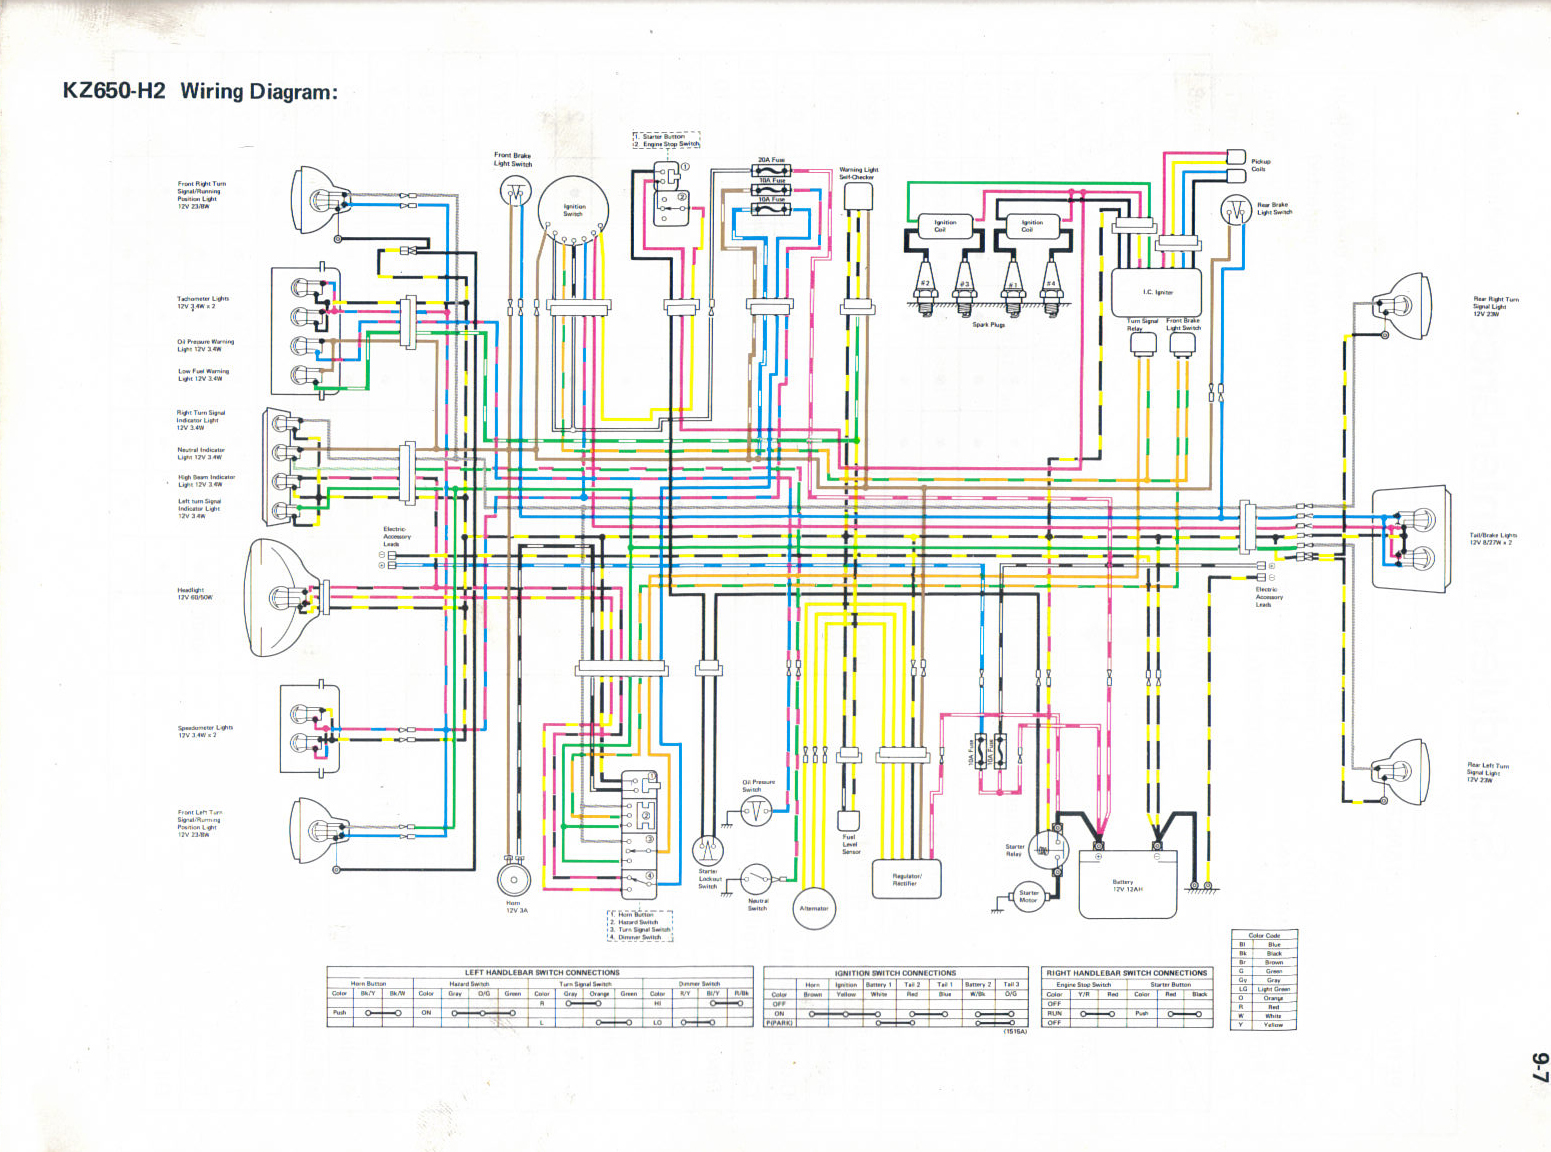 Kz650info Wiring Diagrams Motorcycle Diagram Kz650 H2